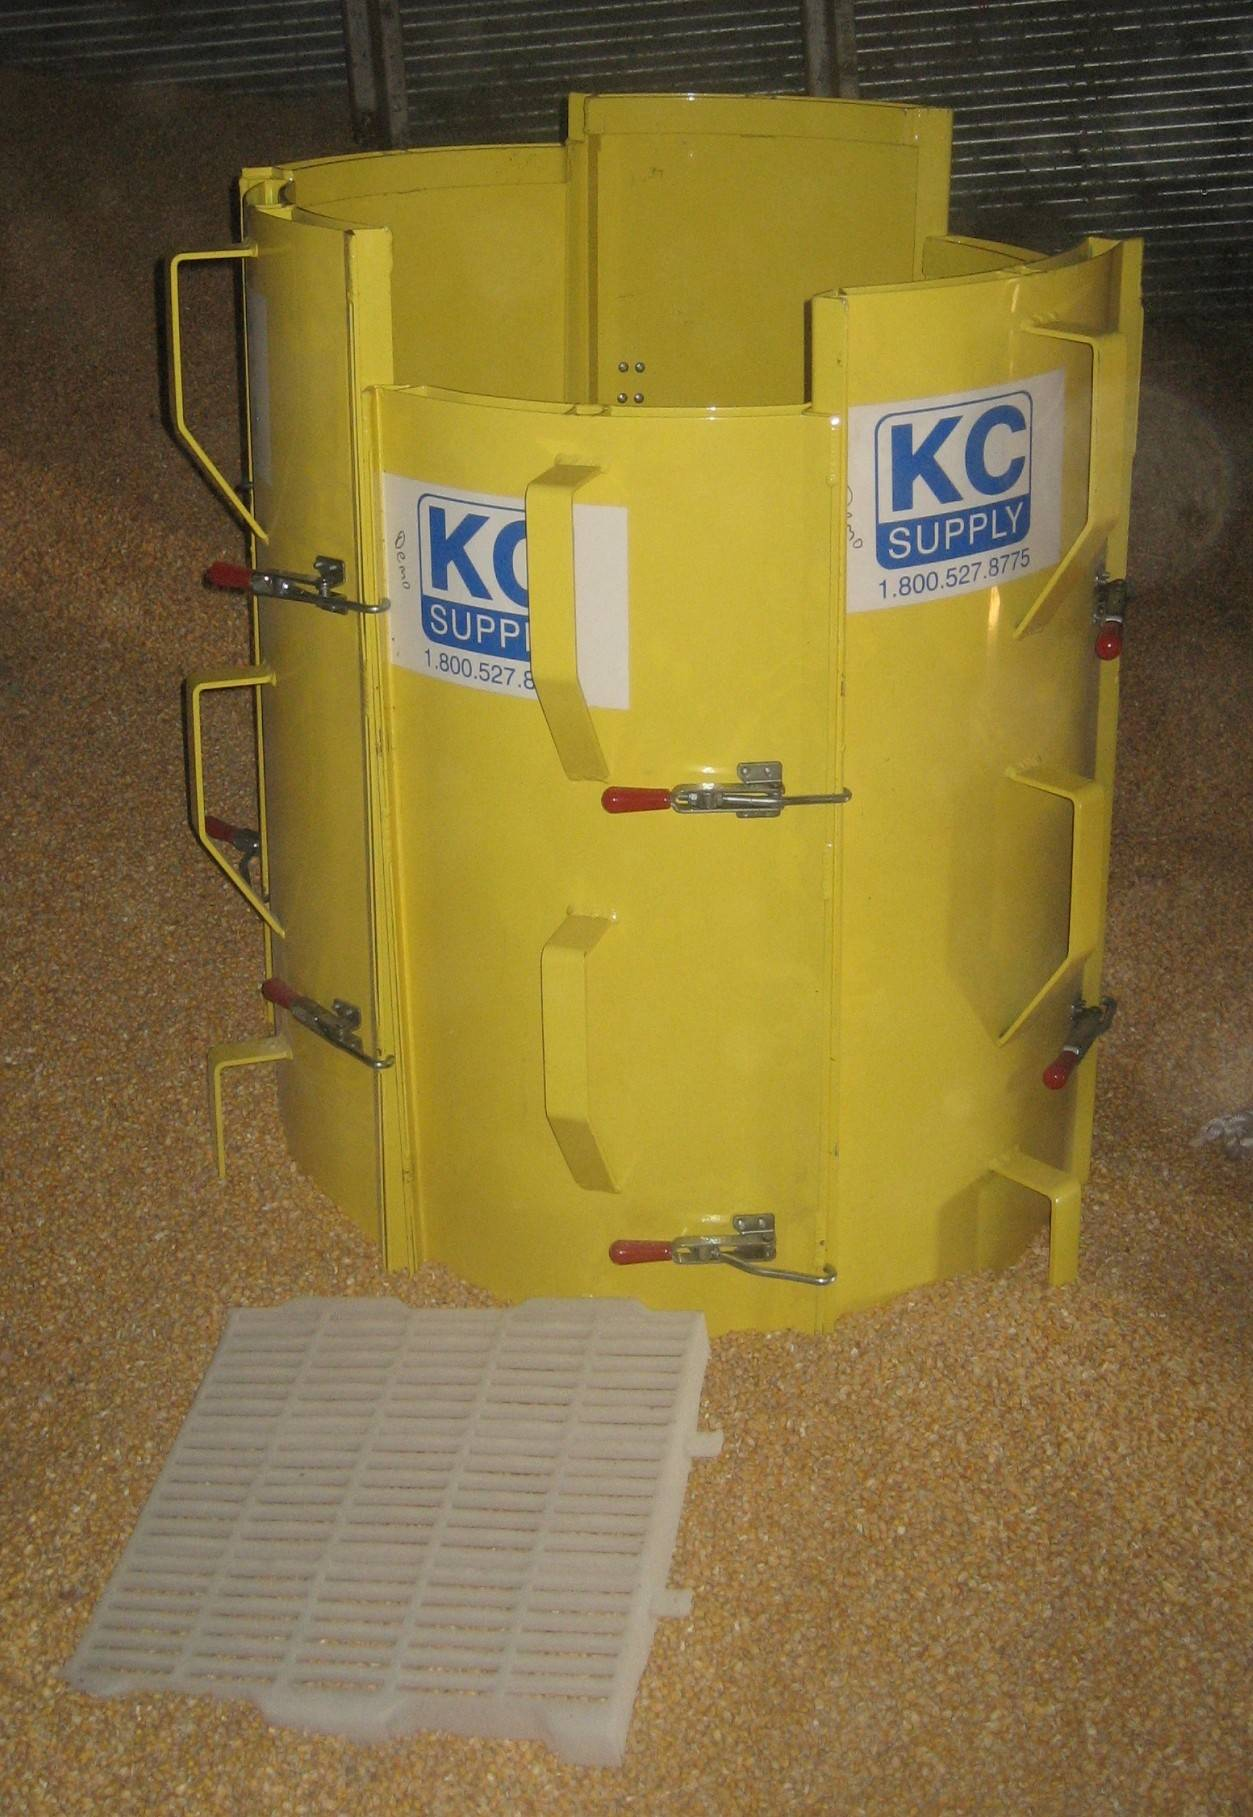 The Kane County Farm Bureau is having a fundraiser to buy a grain rescue tube such as this one. It is made of six panels that are placed around a trapped victim. The panels are then locked together, and the grain inside is removed so the victim can be lifted out.